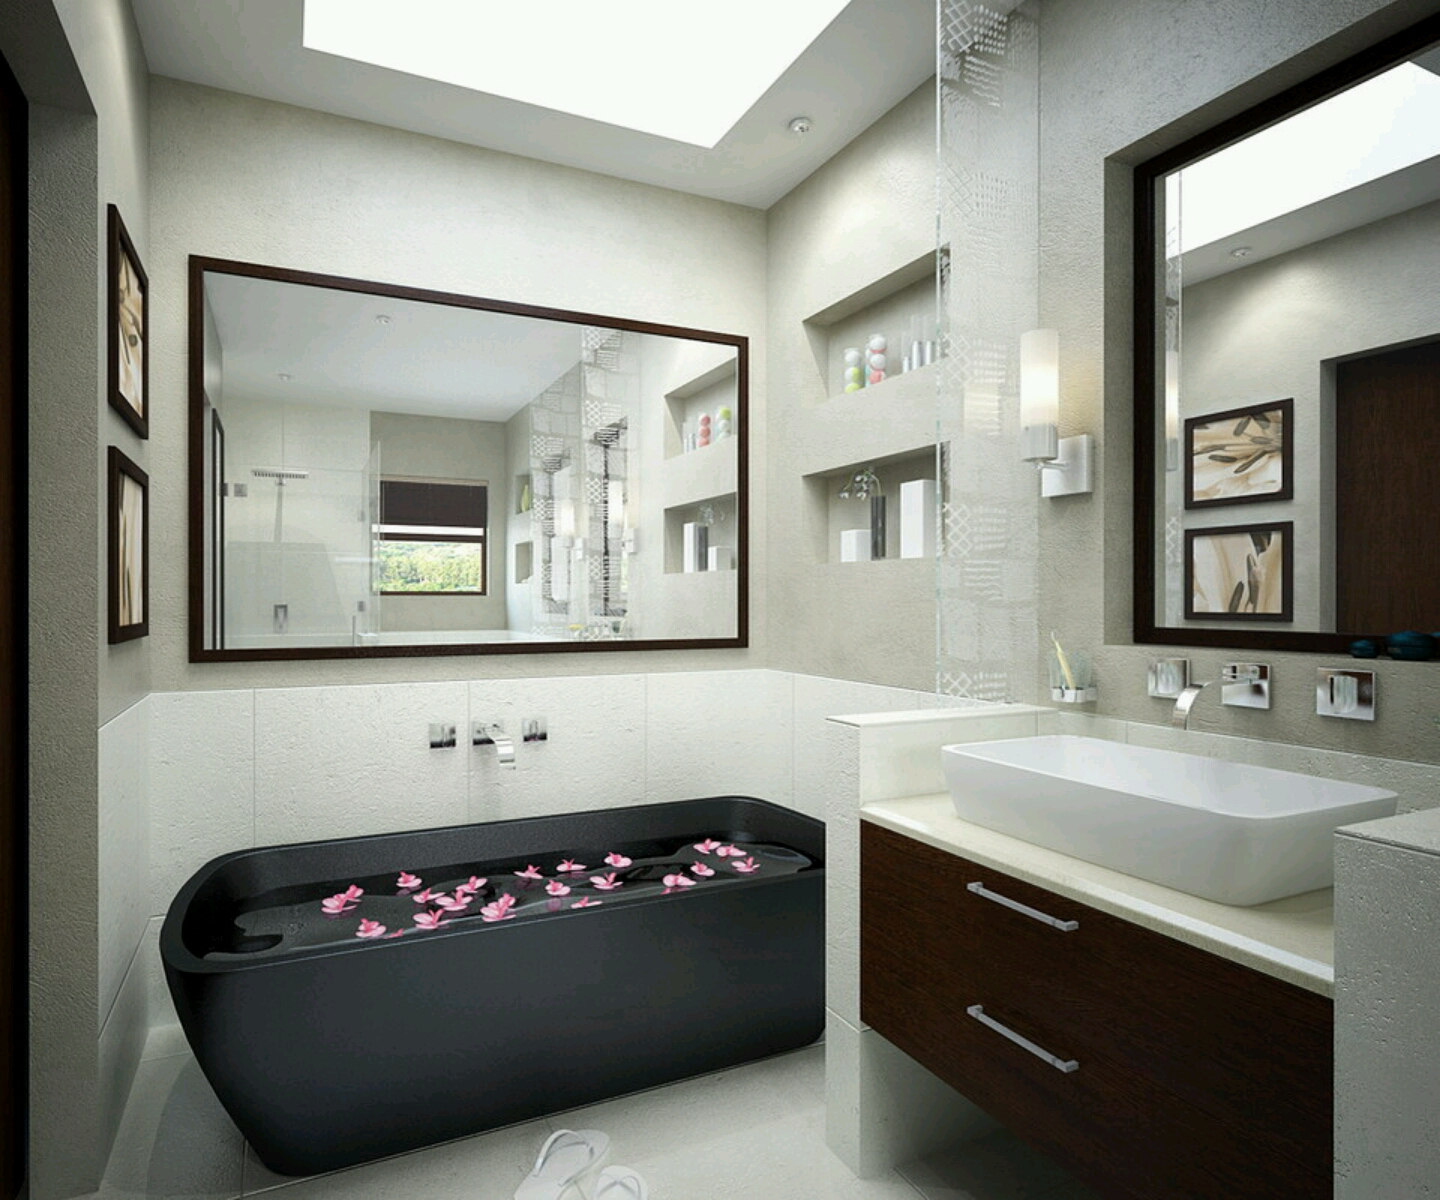 28 model modern bathroom vanities ideas for Cool modern bathrooms